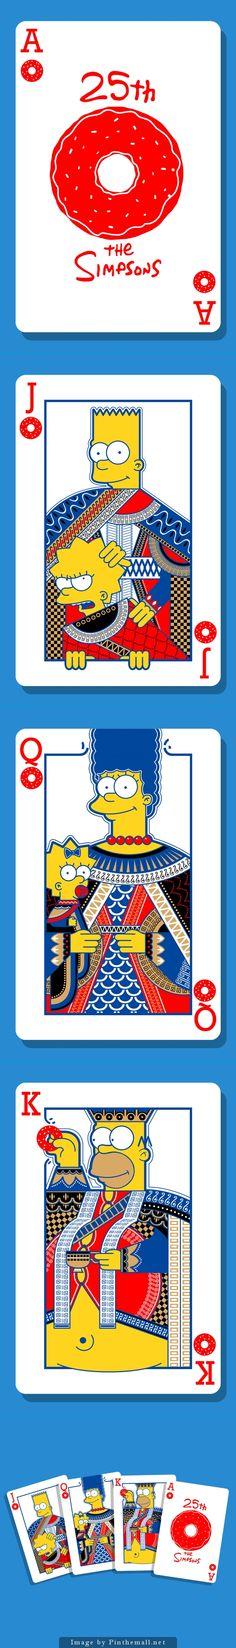 the Simpsons card family